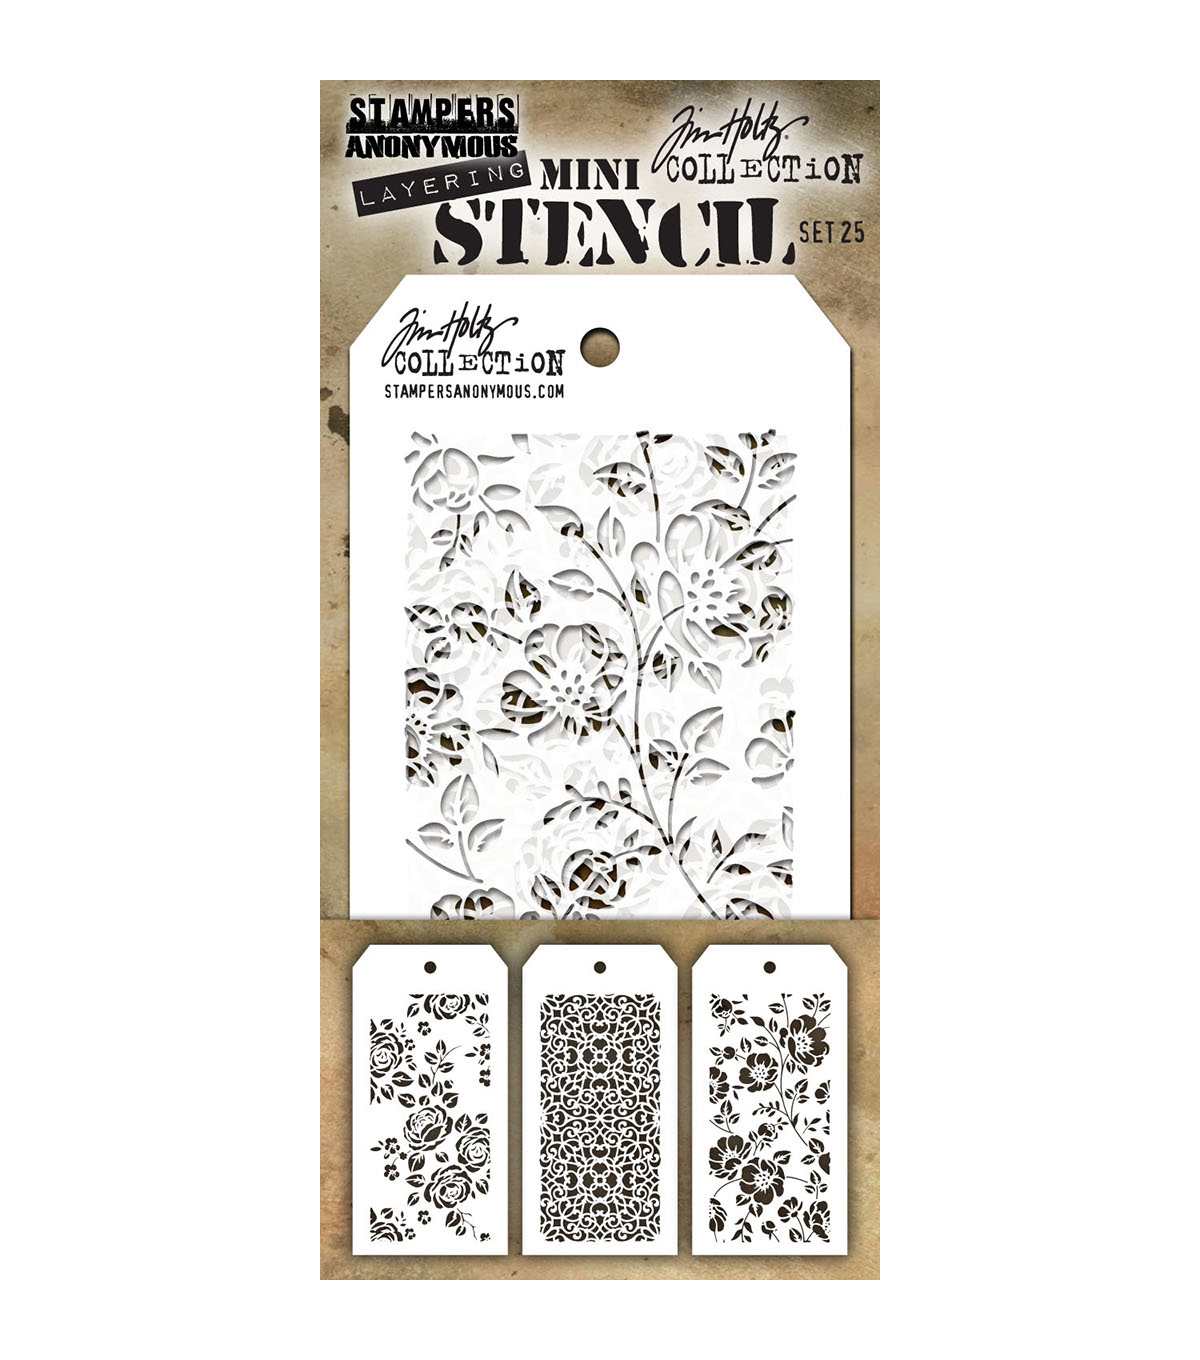 Tim Holtz Stampers Anonymous Linen Stencil